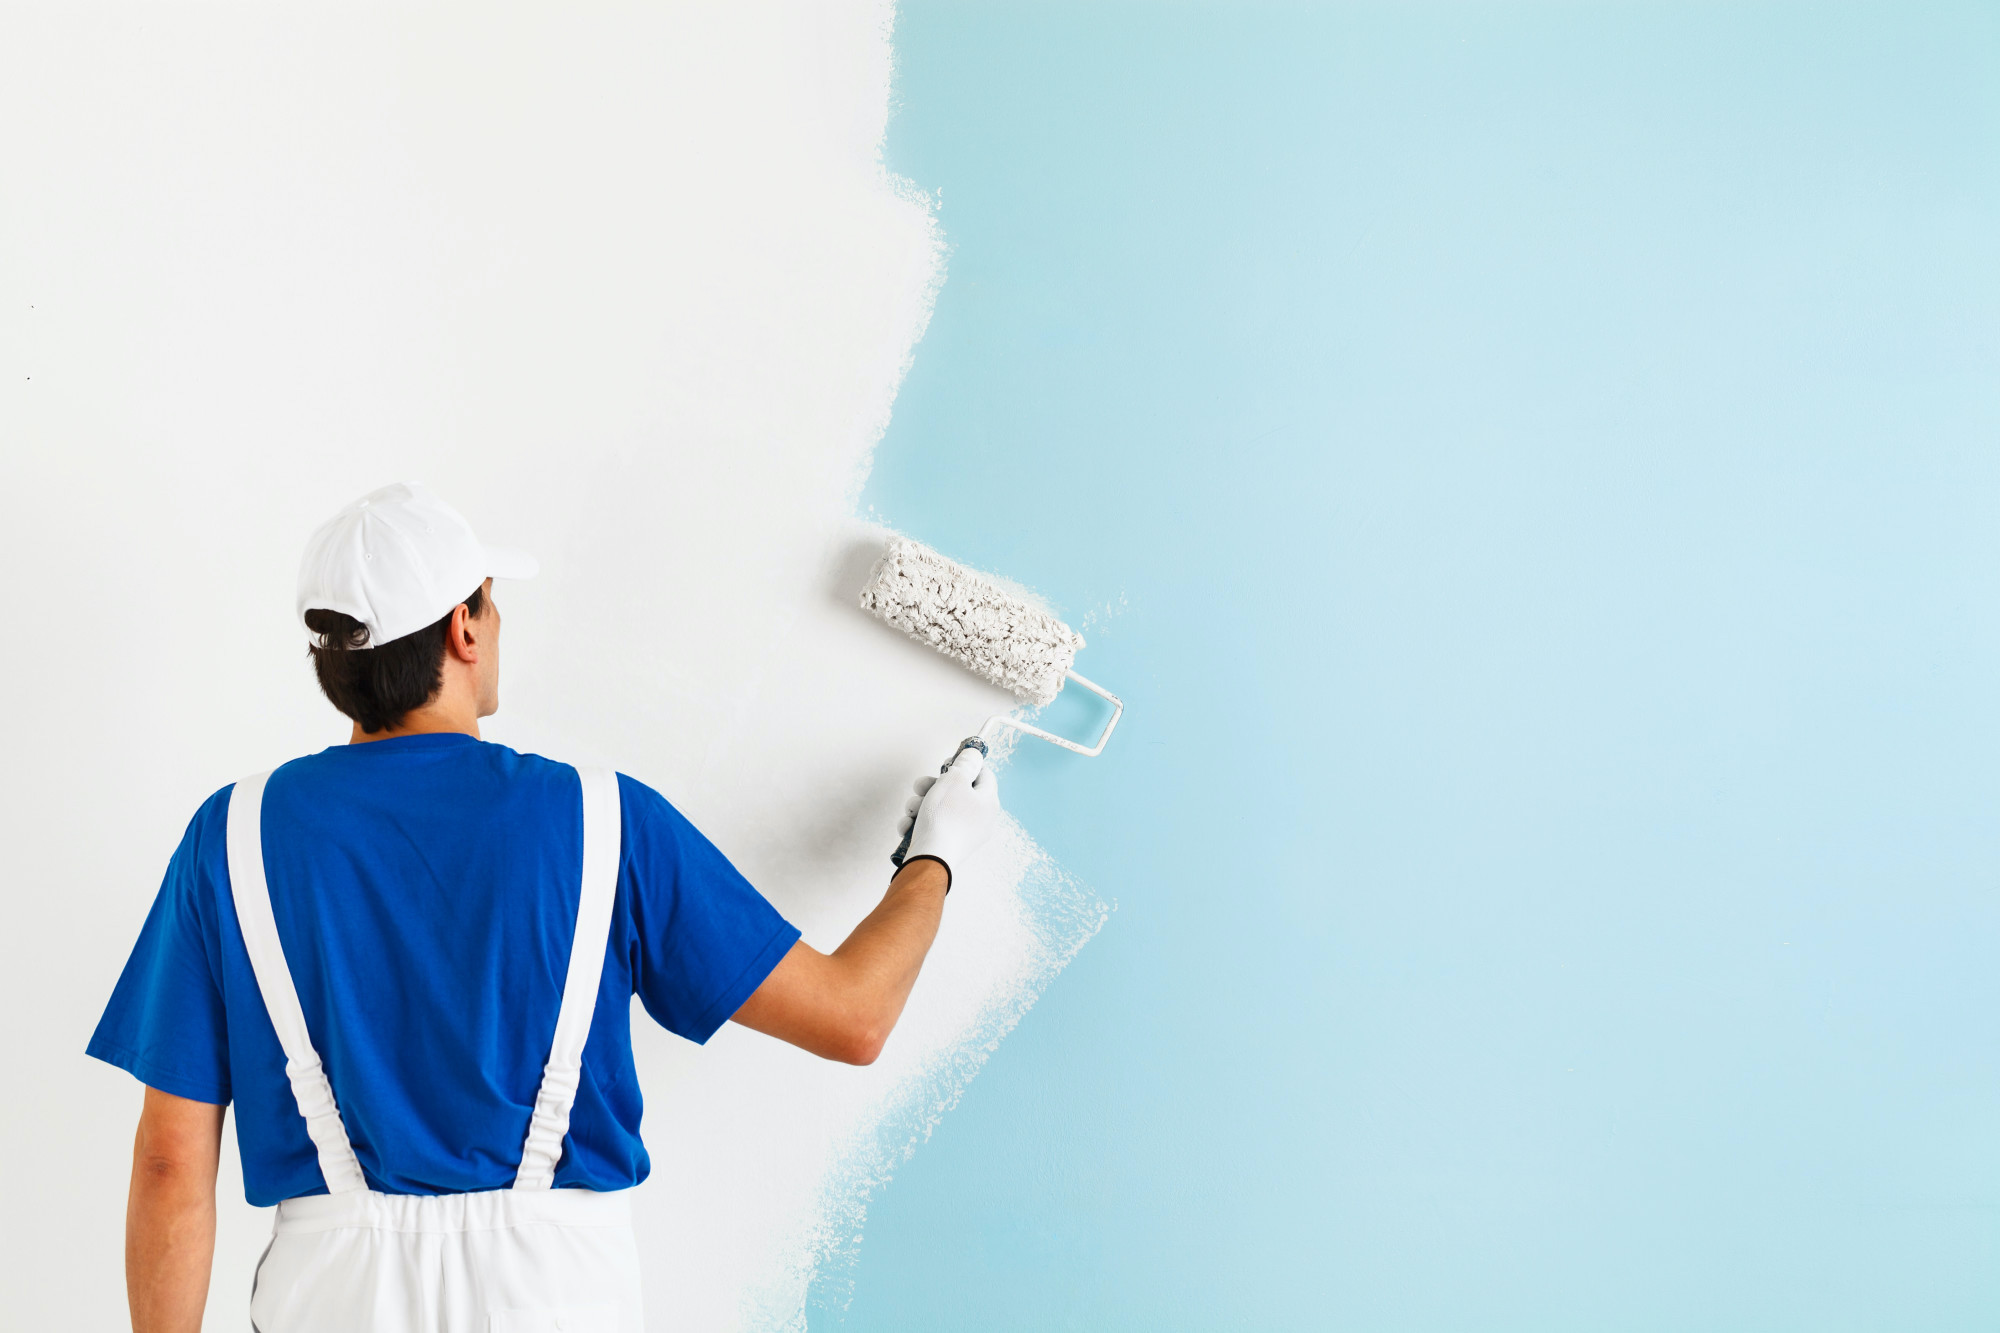 Top Trending Paint Colors for 2021: These Hues Will Make News Next Year